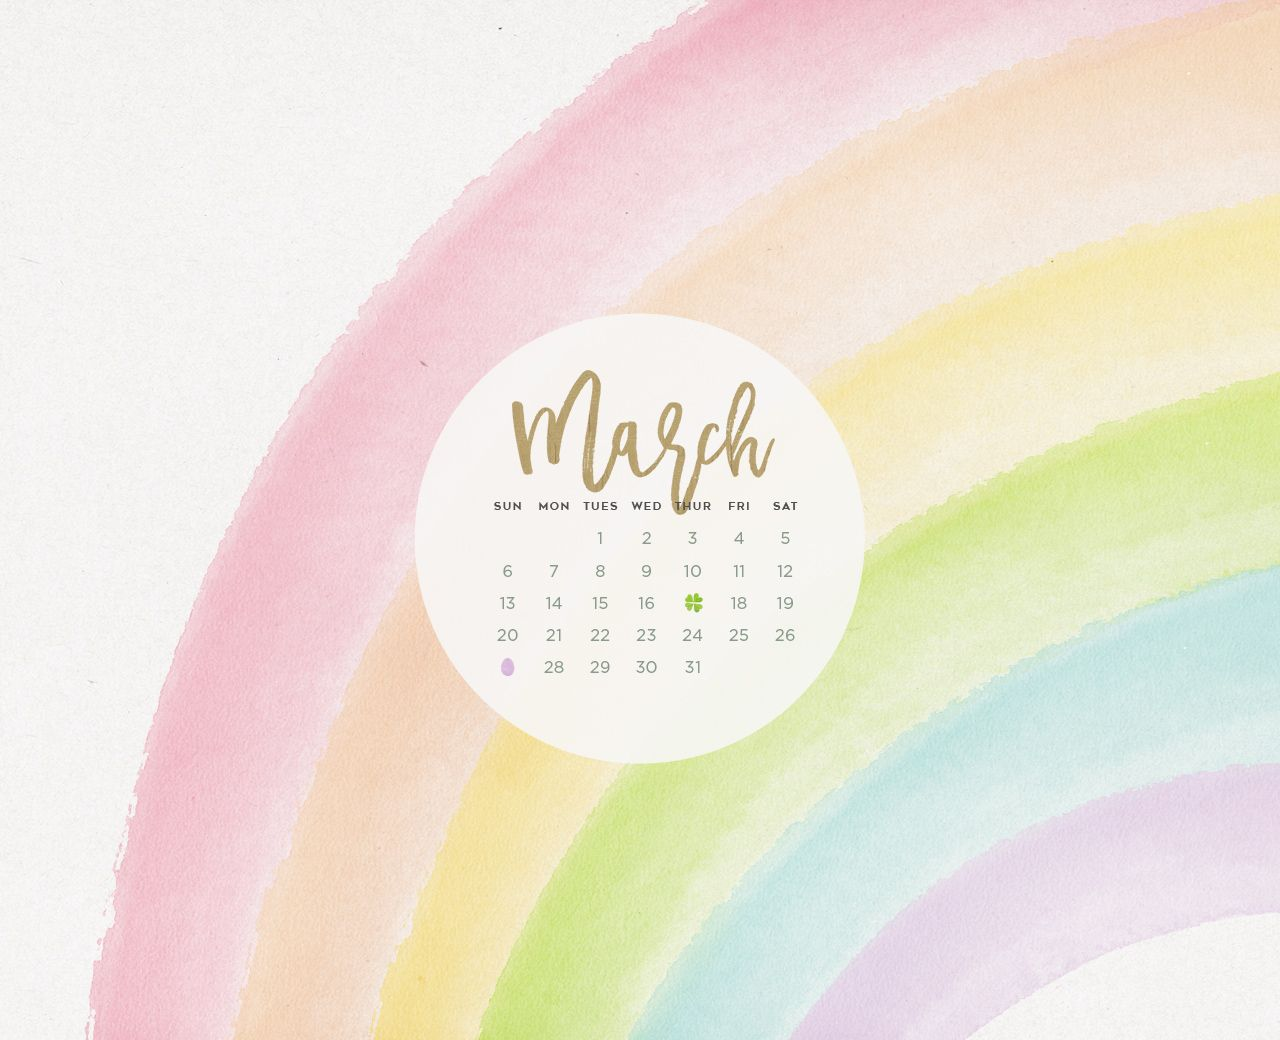 Free desktop, tablet, and phone wallpapers. Welcome the month of Spring with our March calendar! Click & Save this free wallpaper, created especially for all our beautiful Ruchettes!